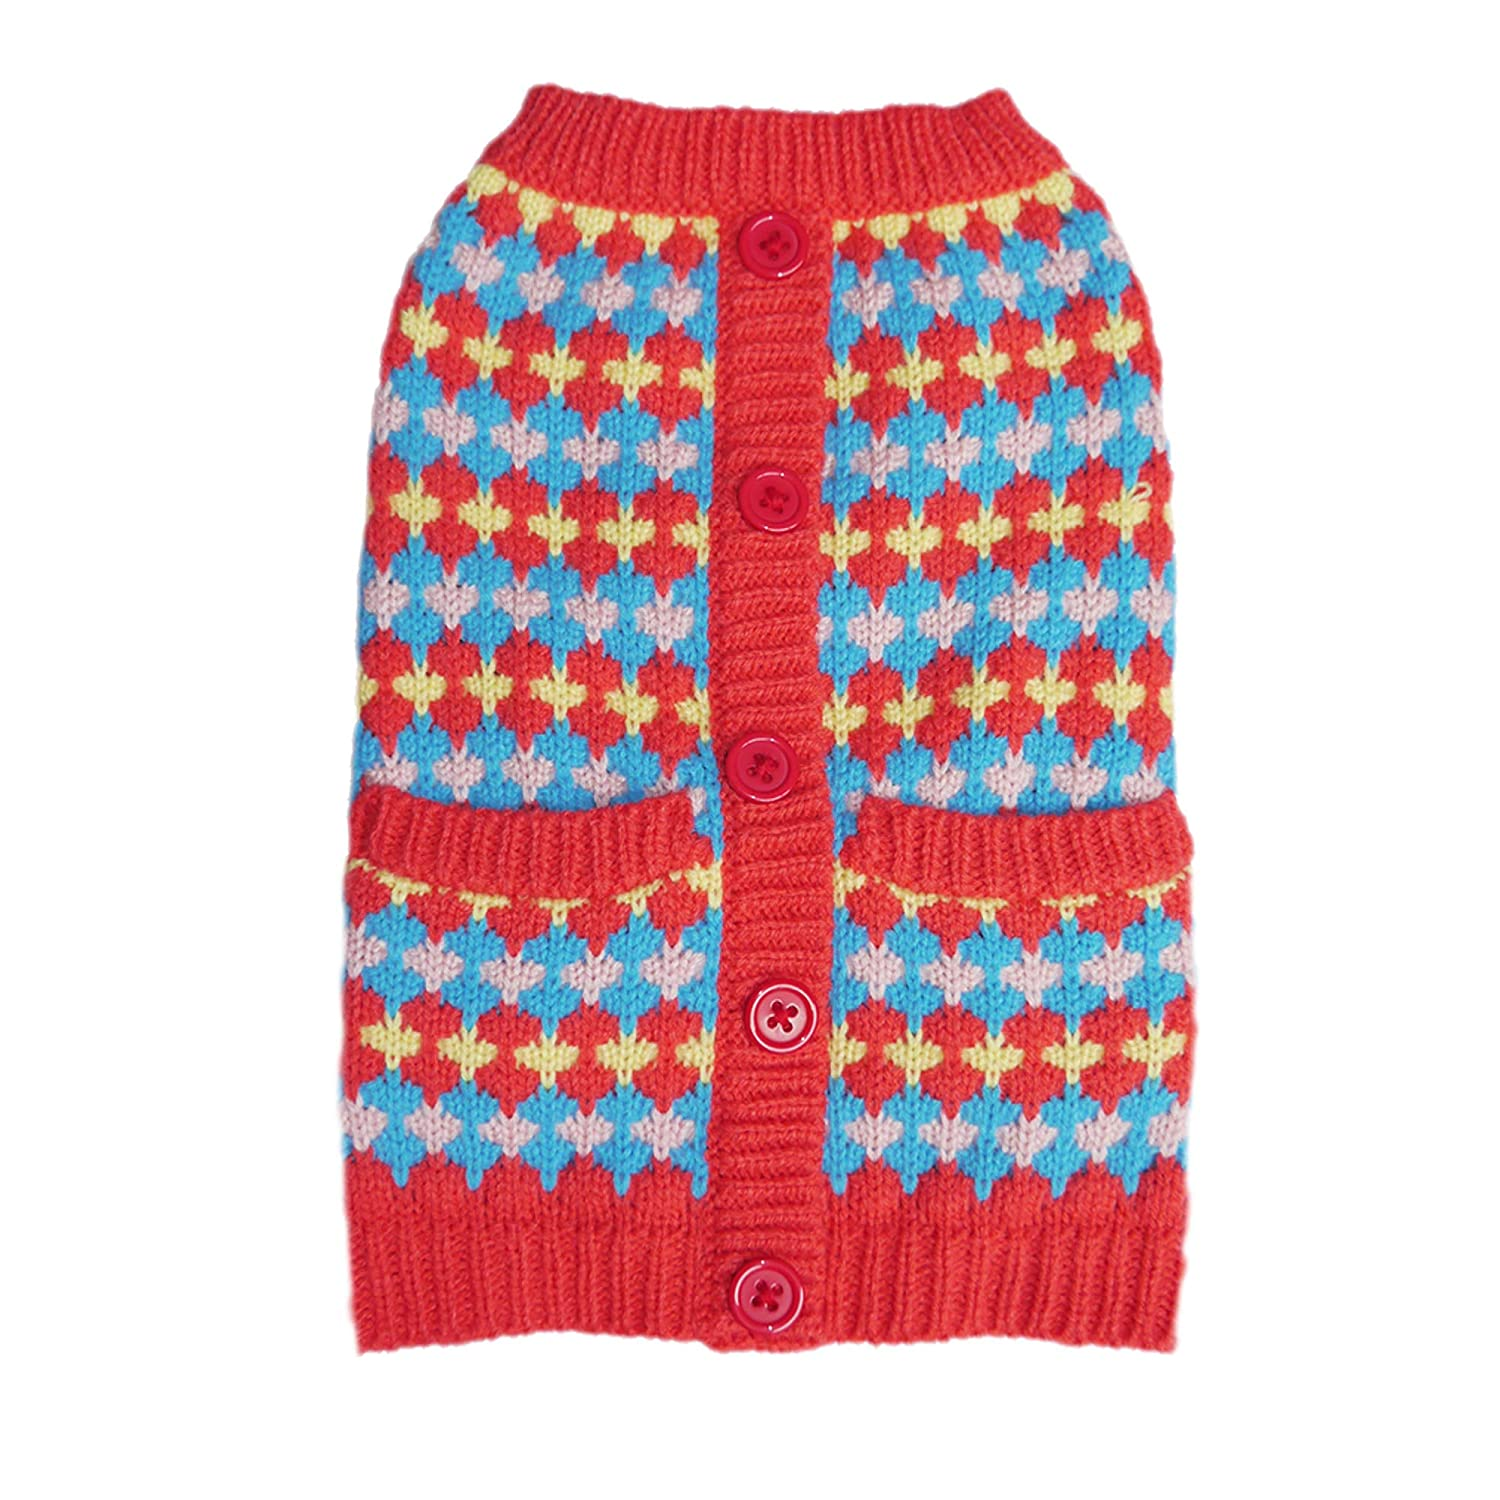 L Pooch Outfitters Dog Sweater & Sweater Dress Collection   Soft Apparel to Keep Warm or for Comfort Extensive Selection of Styles, Patterns and colors   for Small, Medium, Large Dogs